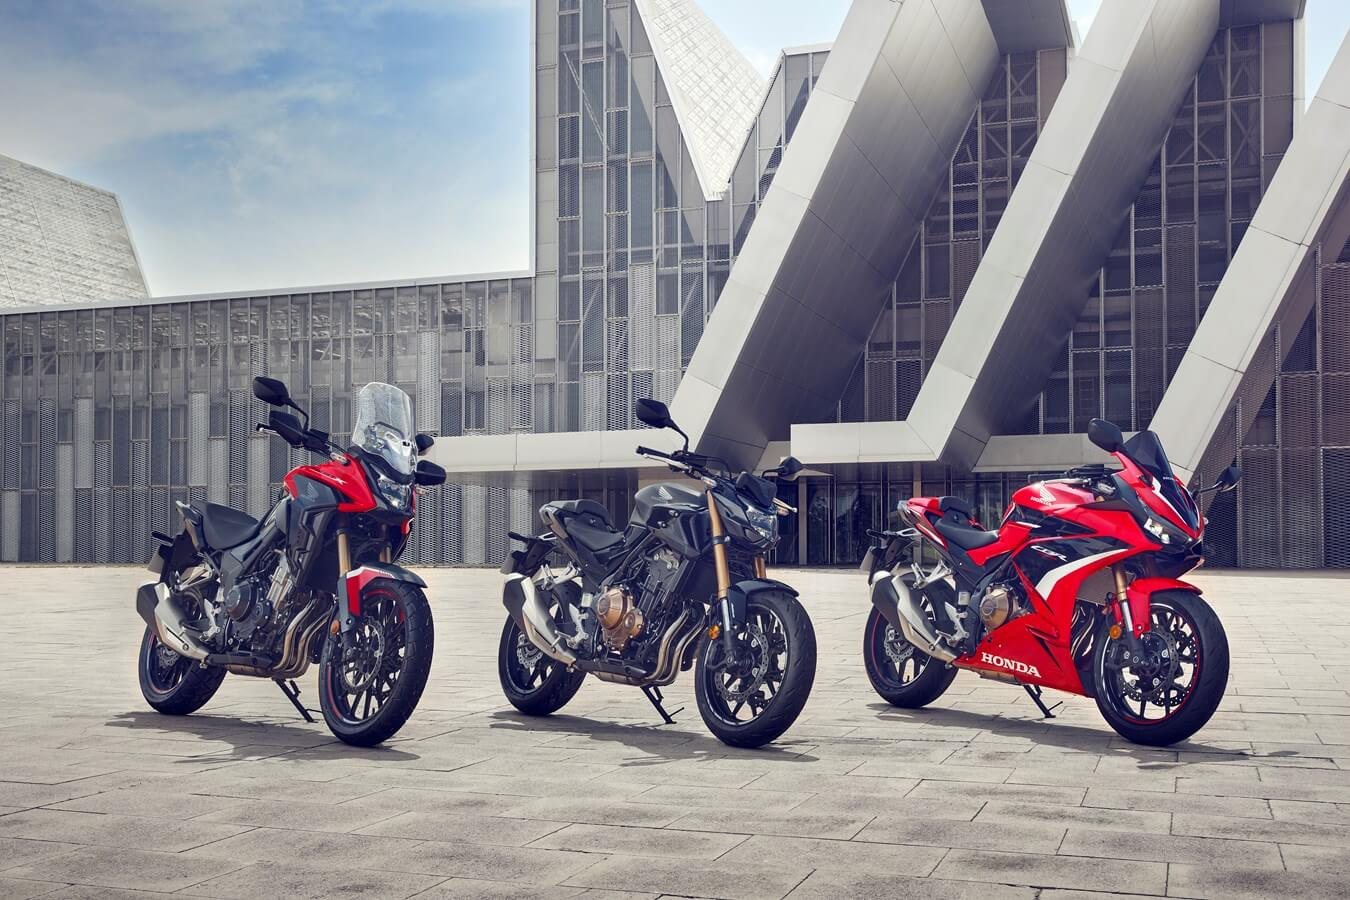 2022 Honda CB500X Review / Specs + New Changes Explained! | Colors, Price, Release Date + More! | Adventure Motorcycle Buyer's Guide